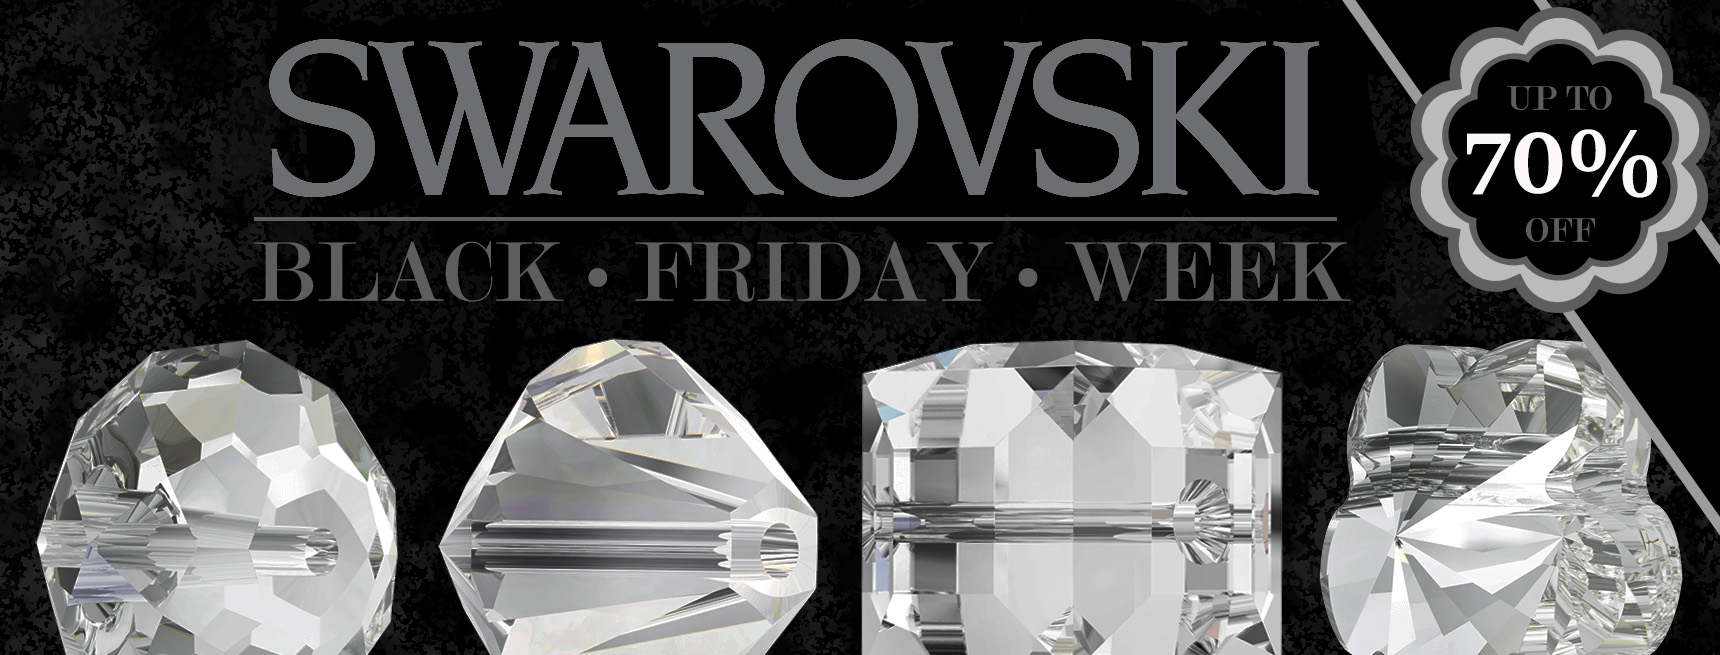 Up to 70% Off All Swarovski Crystals - Black Friday Sale